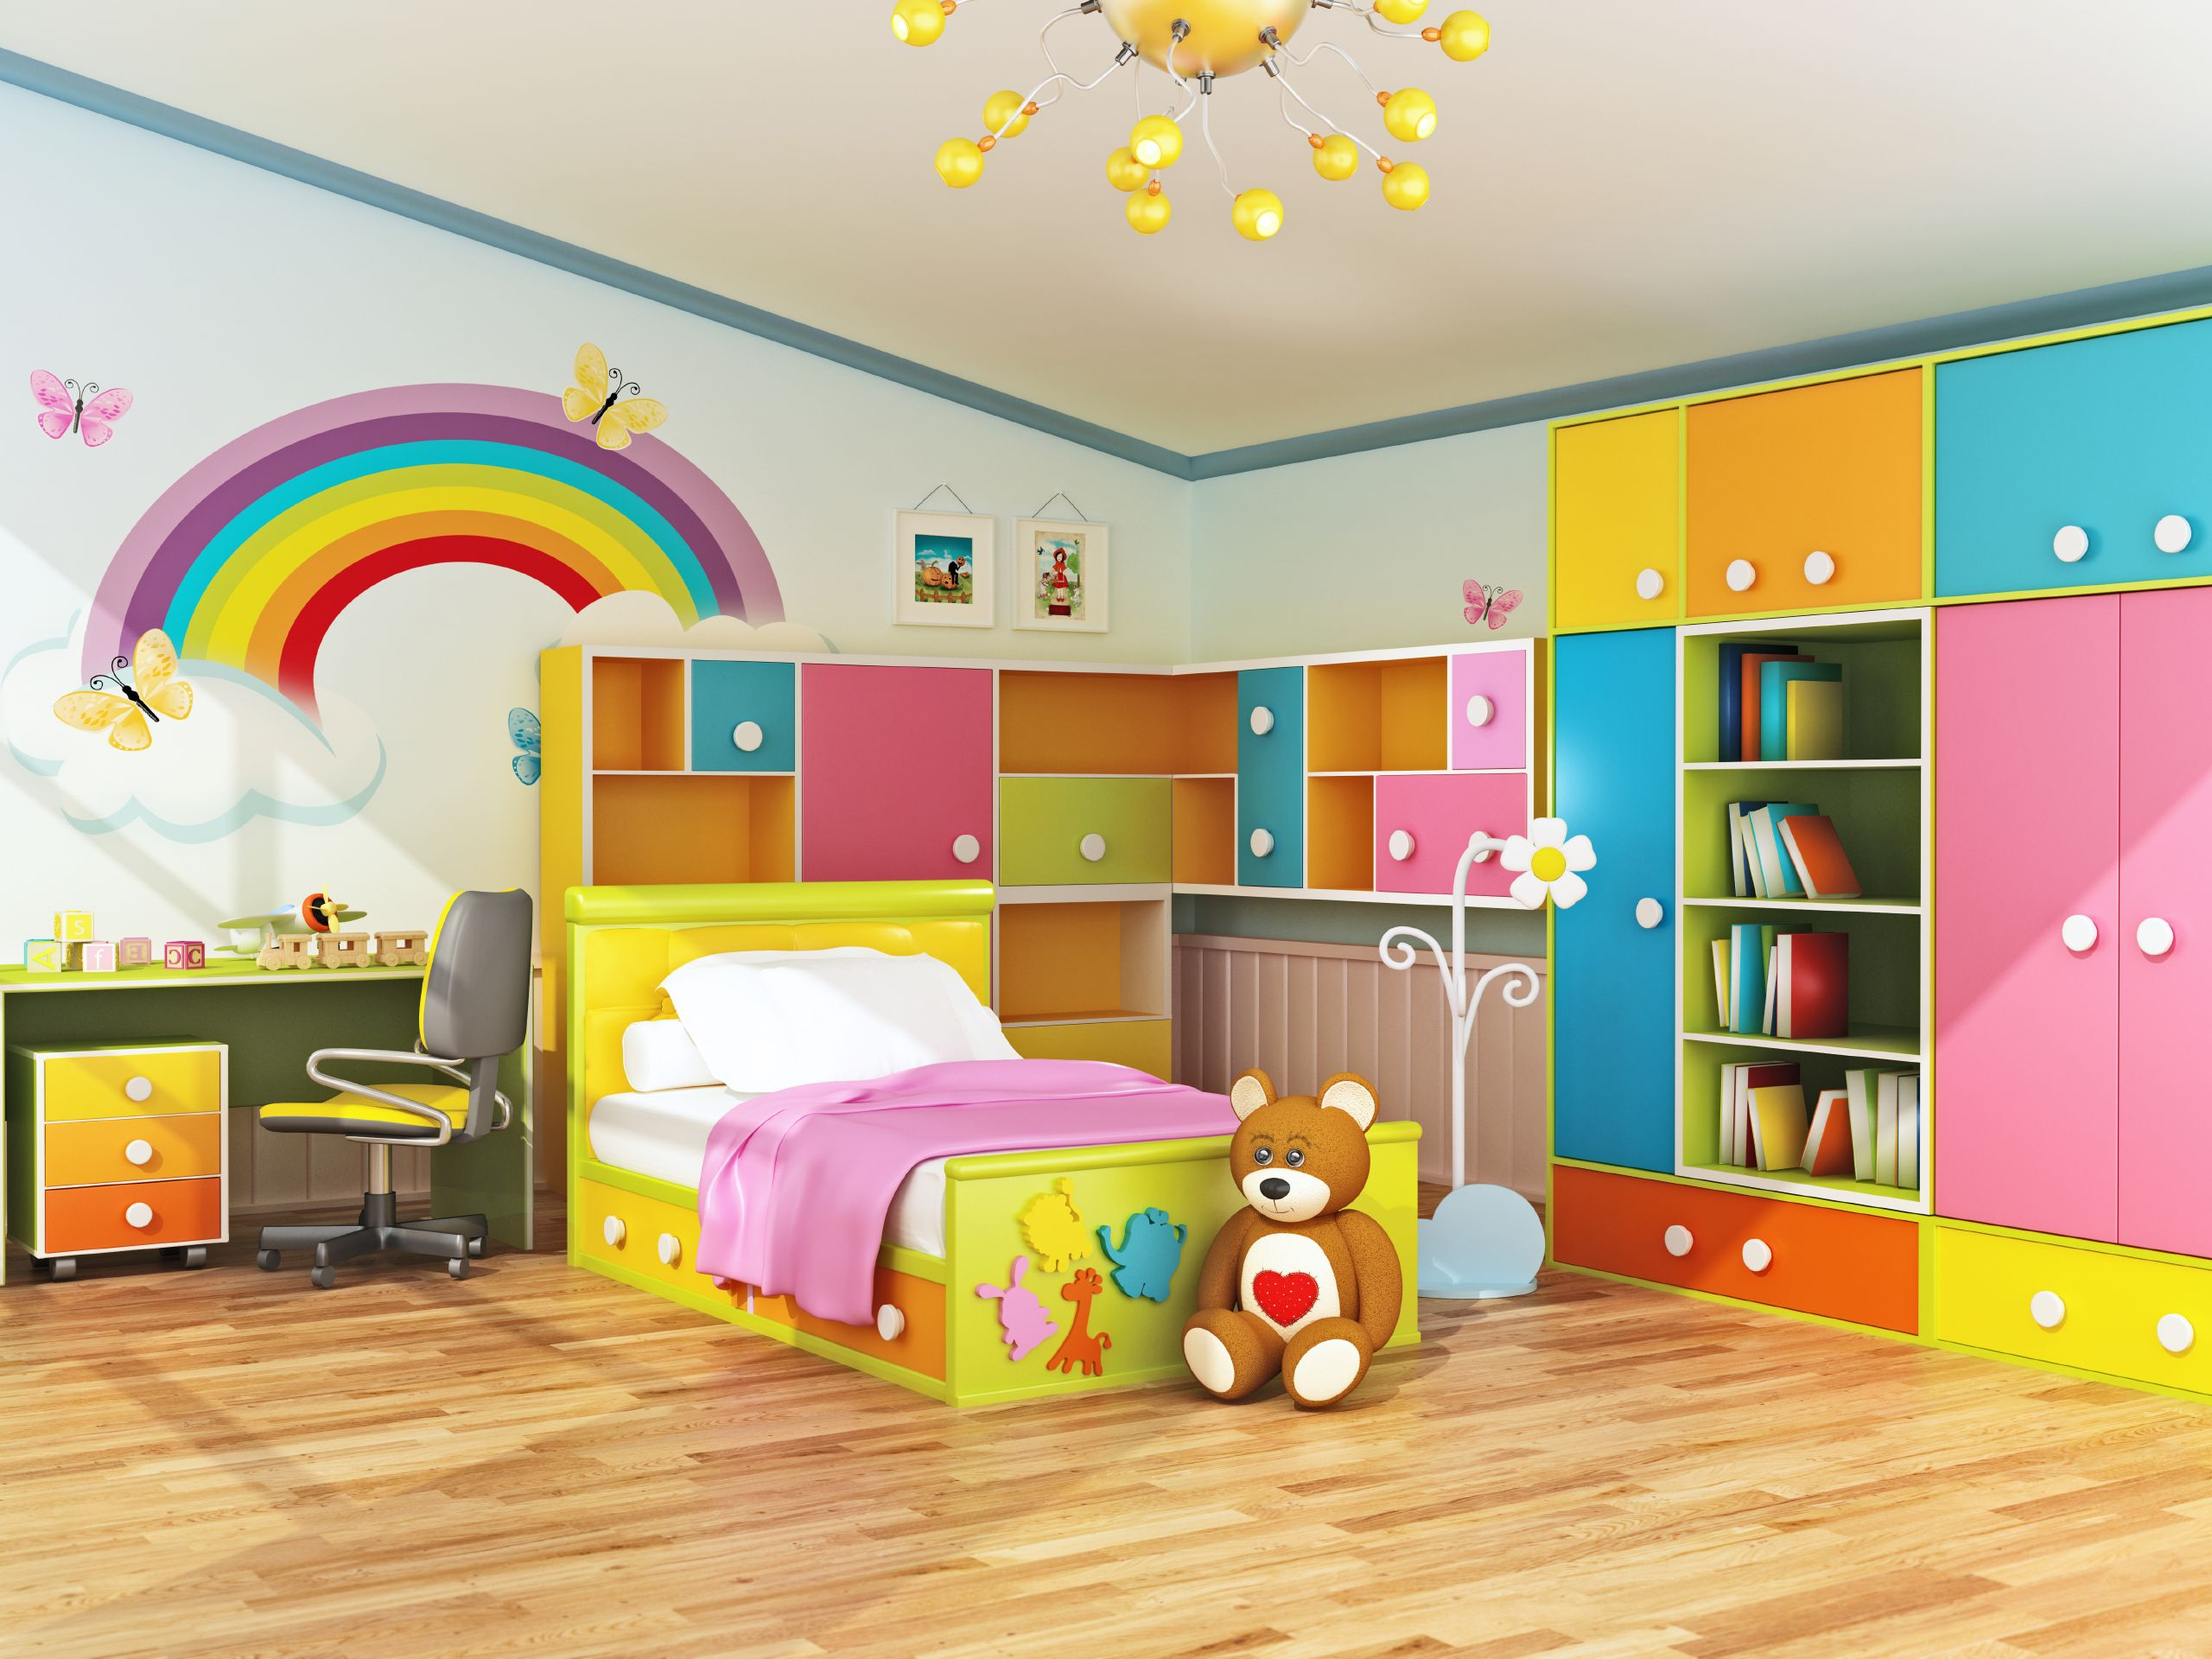 Plan Ahead When Decorating Kids Bedrooms With Images Cool